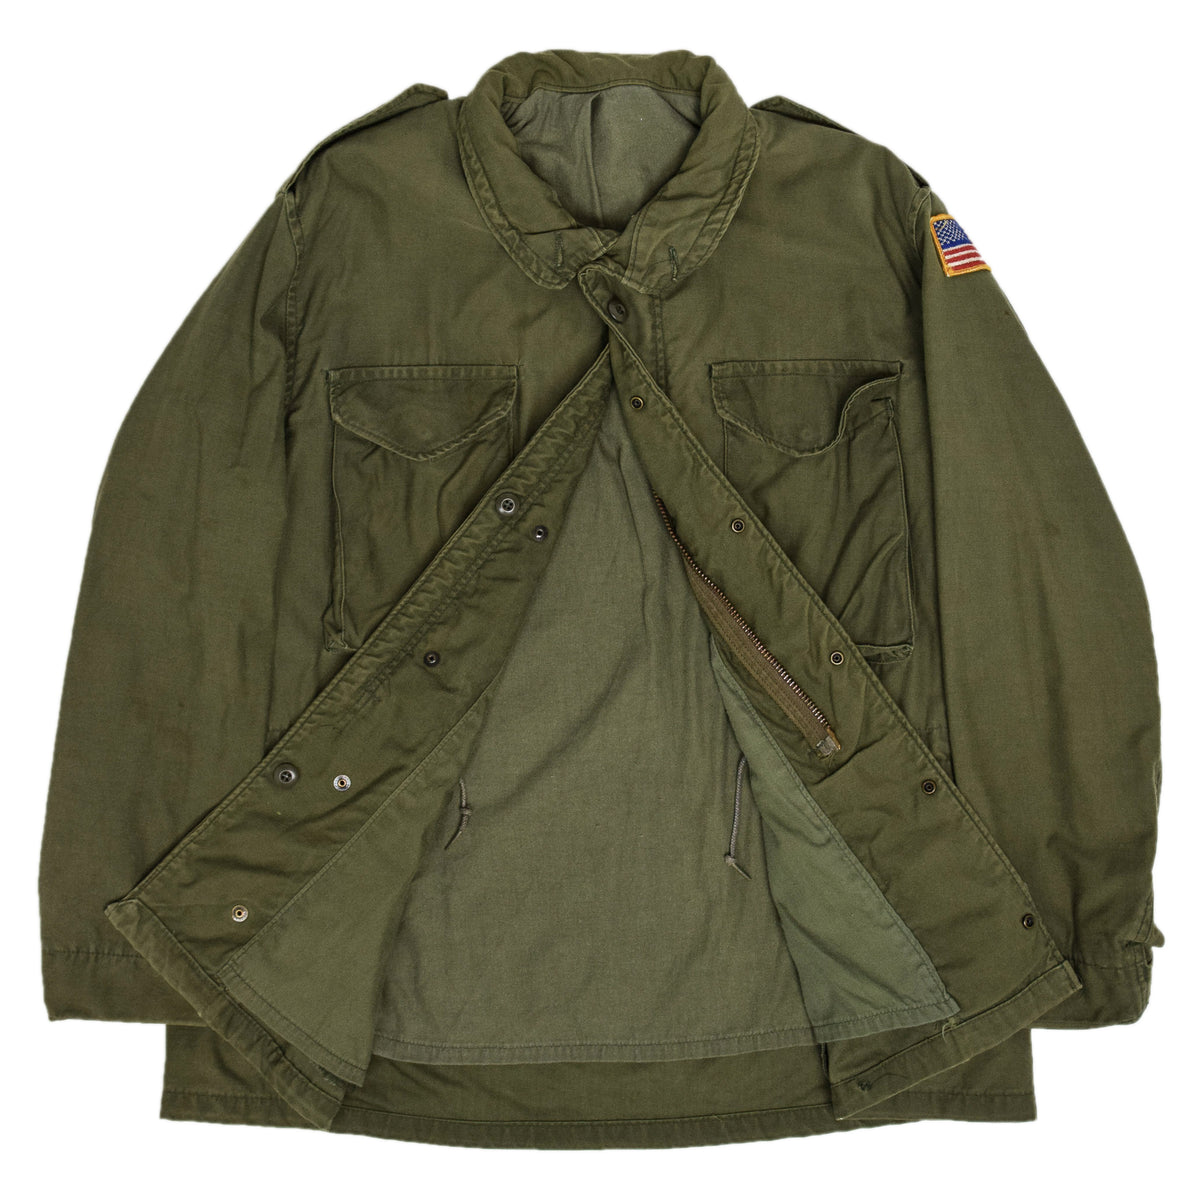 Vintage 80s M-65 Field Cotton Sateen 0G-107 Green US Army Coat L Regular